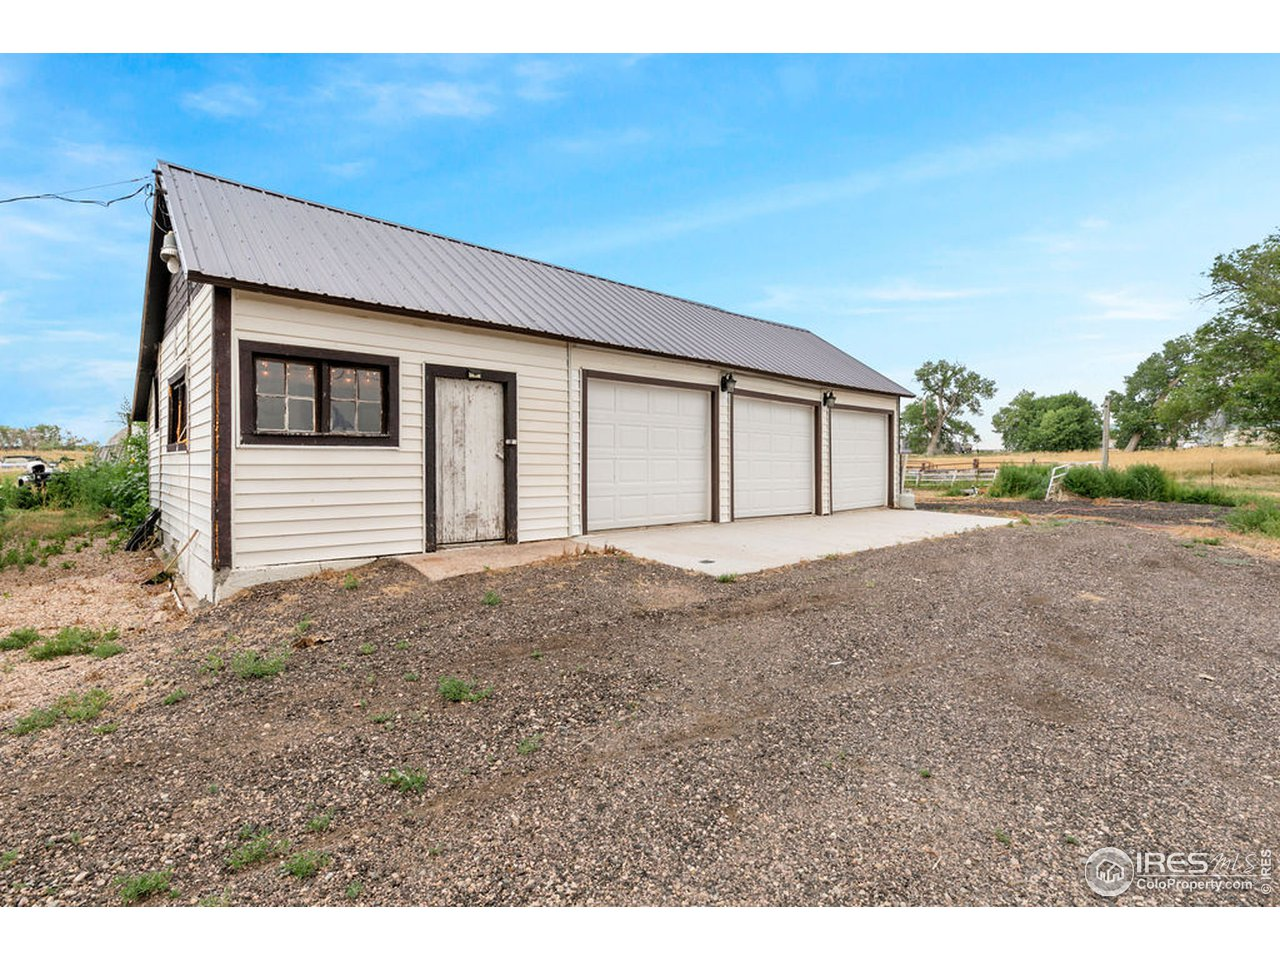 Garage has 3 parking bays on the south side and a double bay on the east for a total of 5 spaces, plus storage and an entertaining space in the west end.  Newer concrete parking apron.  Metal roof was recently replaced.